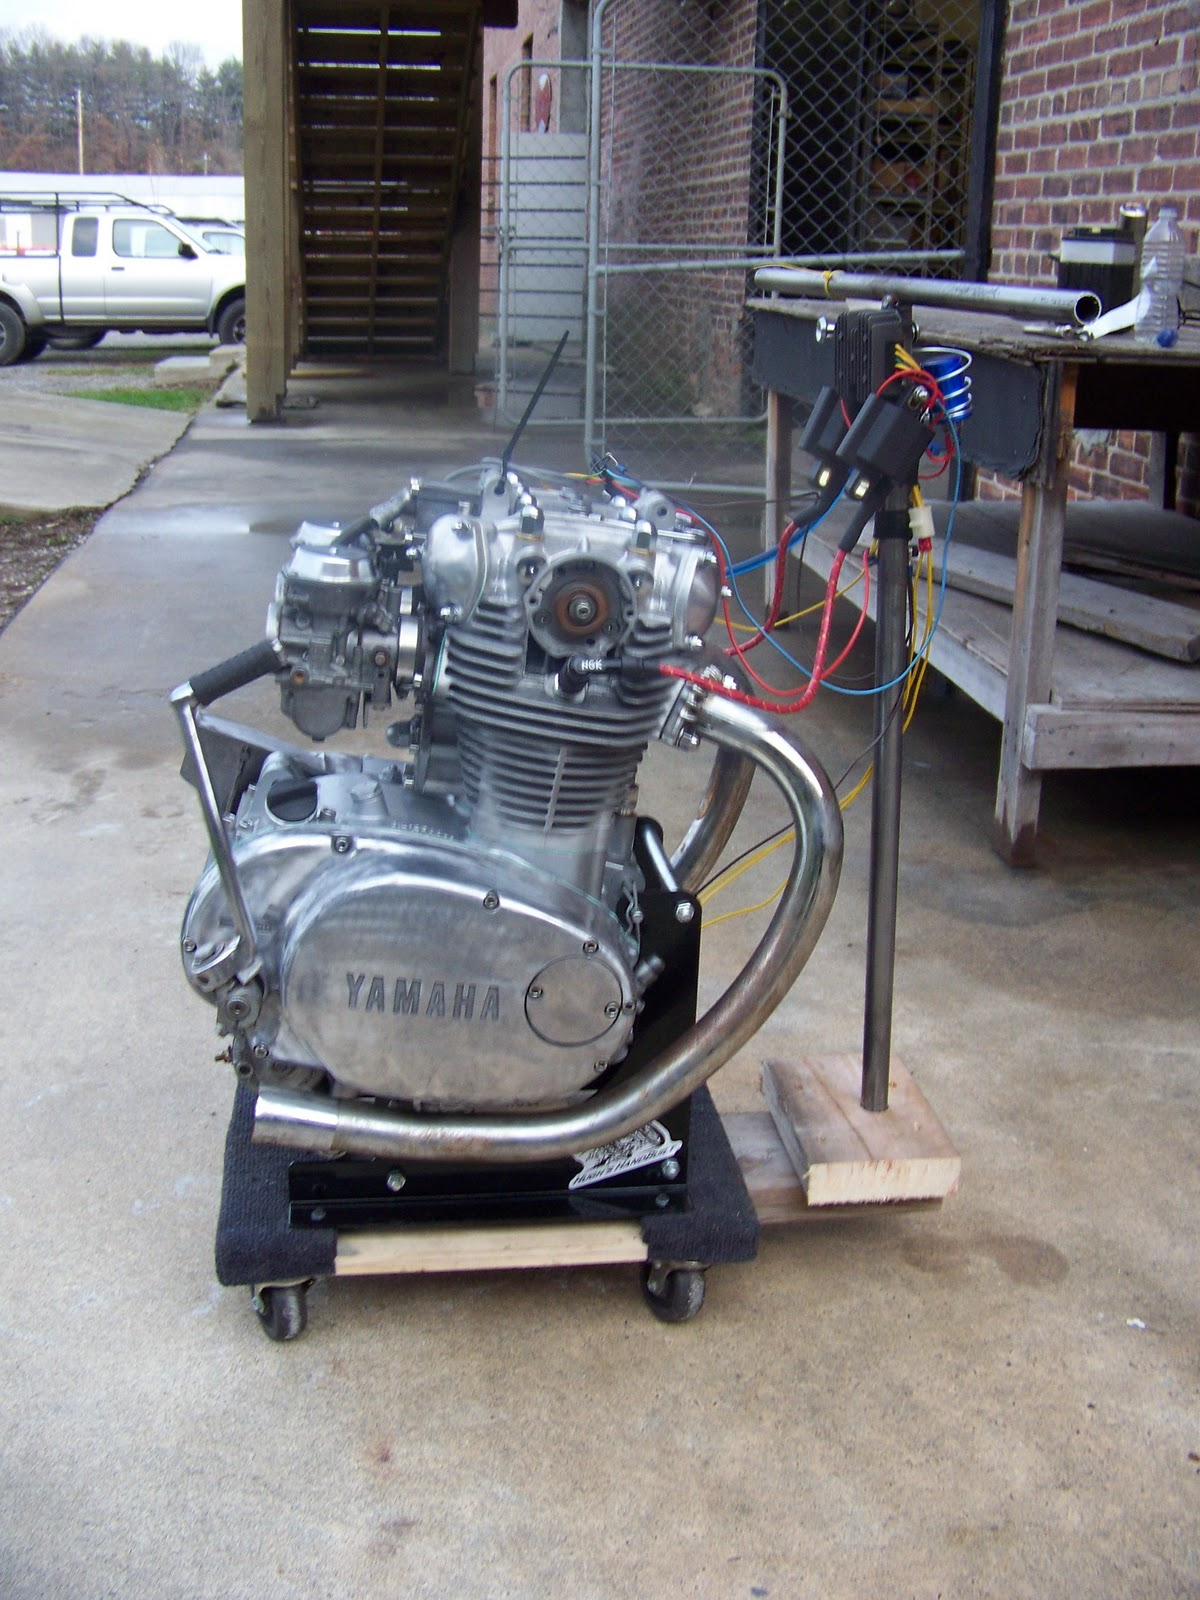 Hugh U0026 39 S Handbuilt  Another Rephased Xs650 Engine